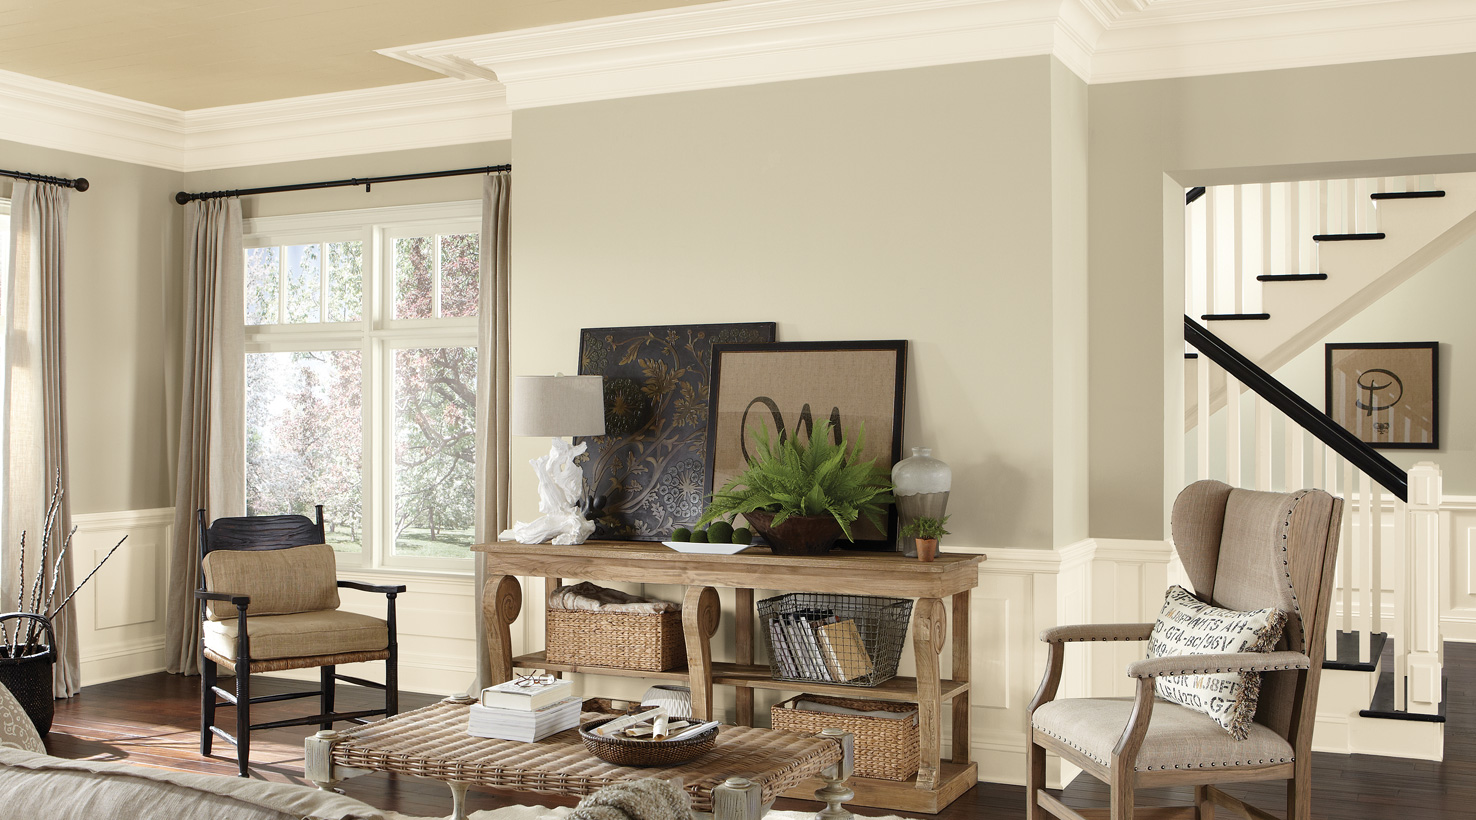 Sherwin williams interior paint colors living room color inspiration